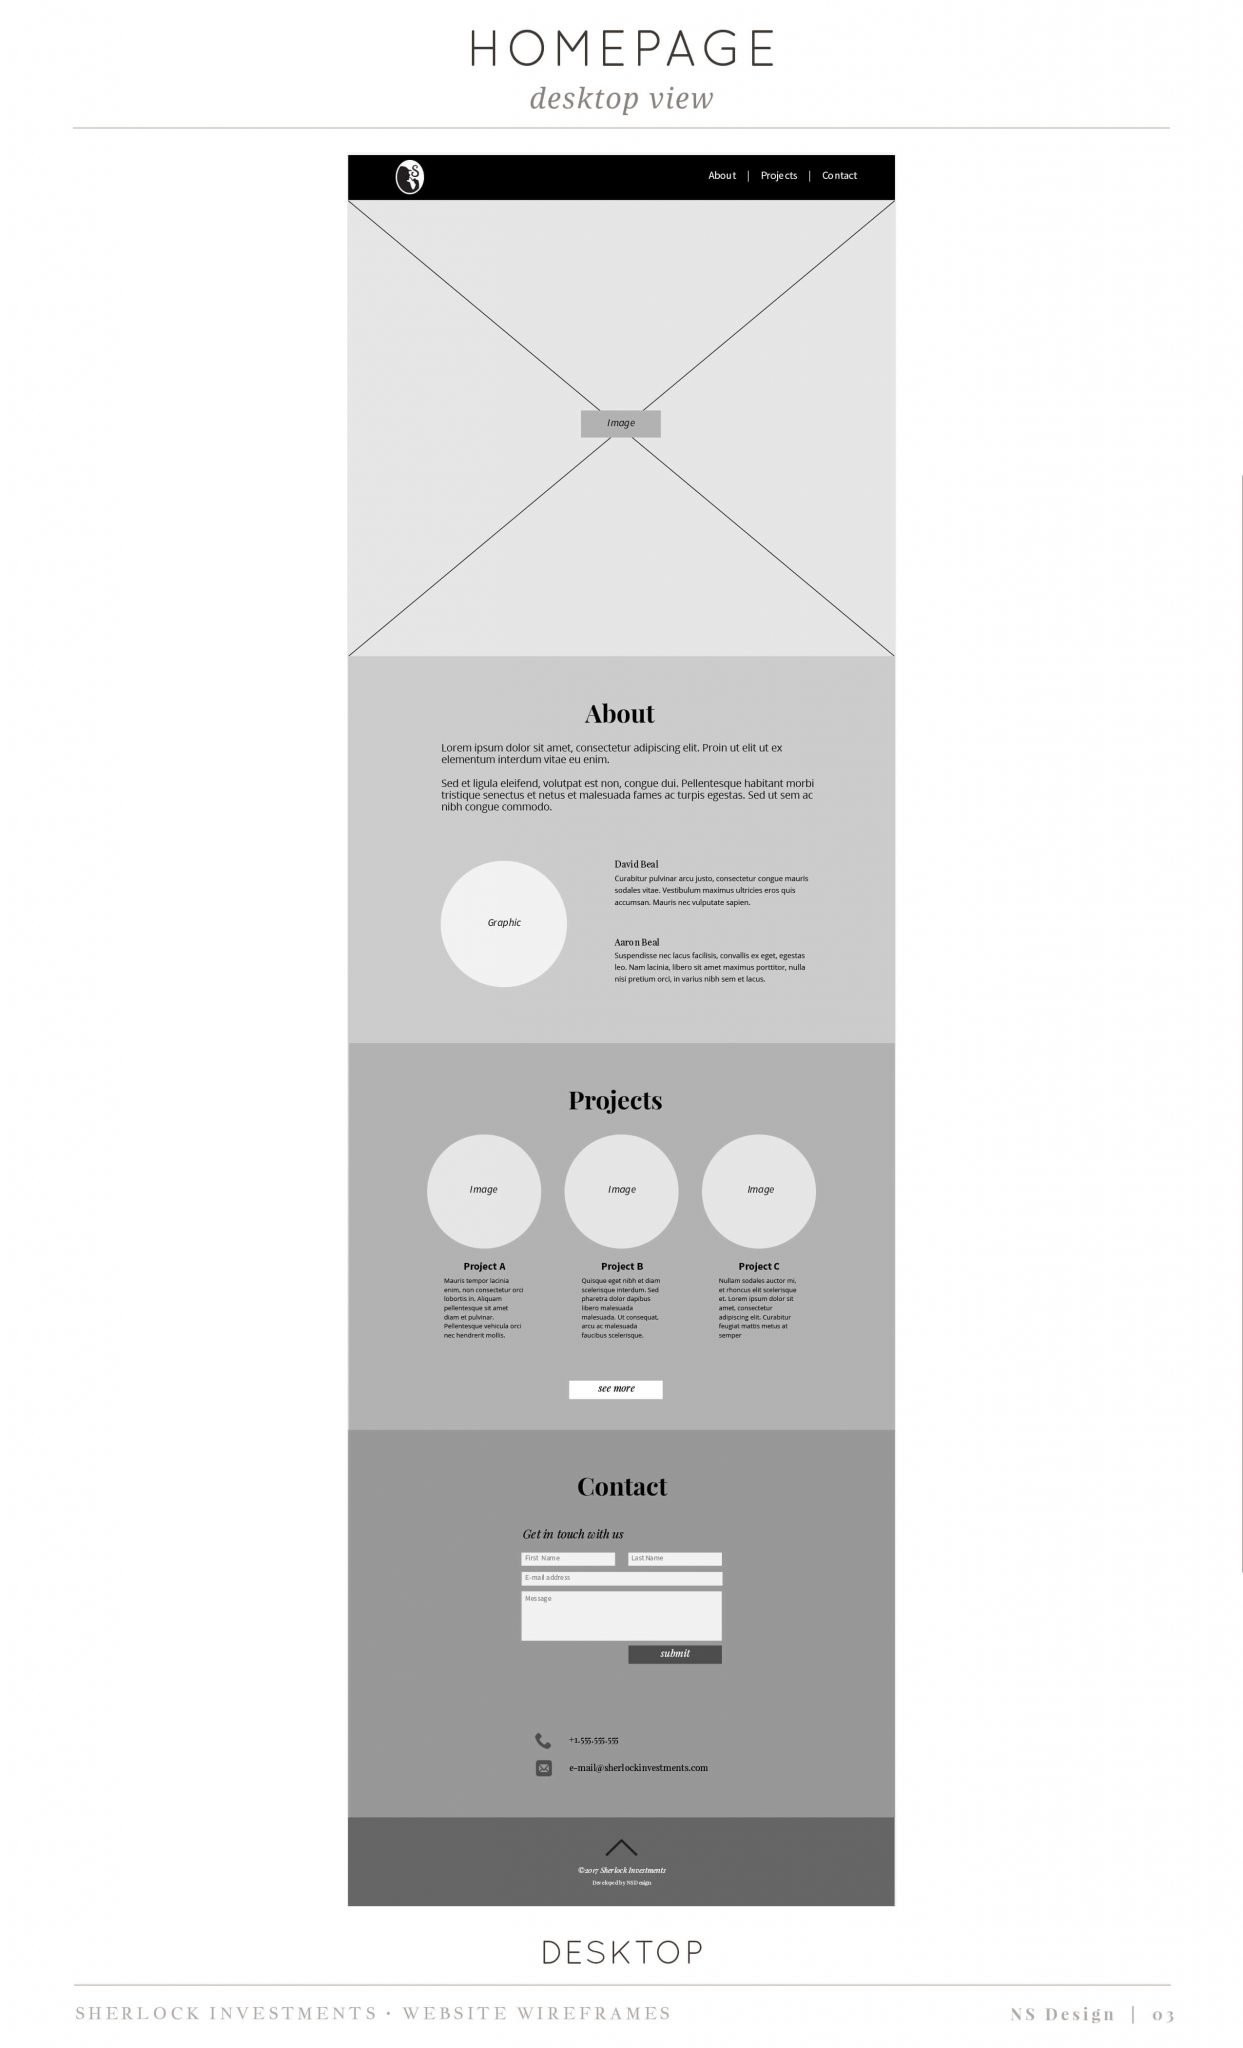 NS-Design-Sherlock Investments_Wireframe-Homepage